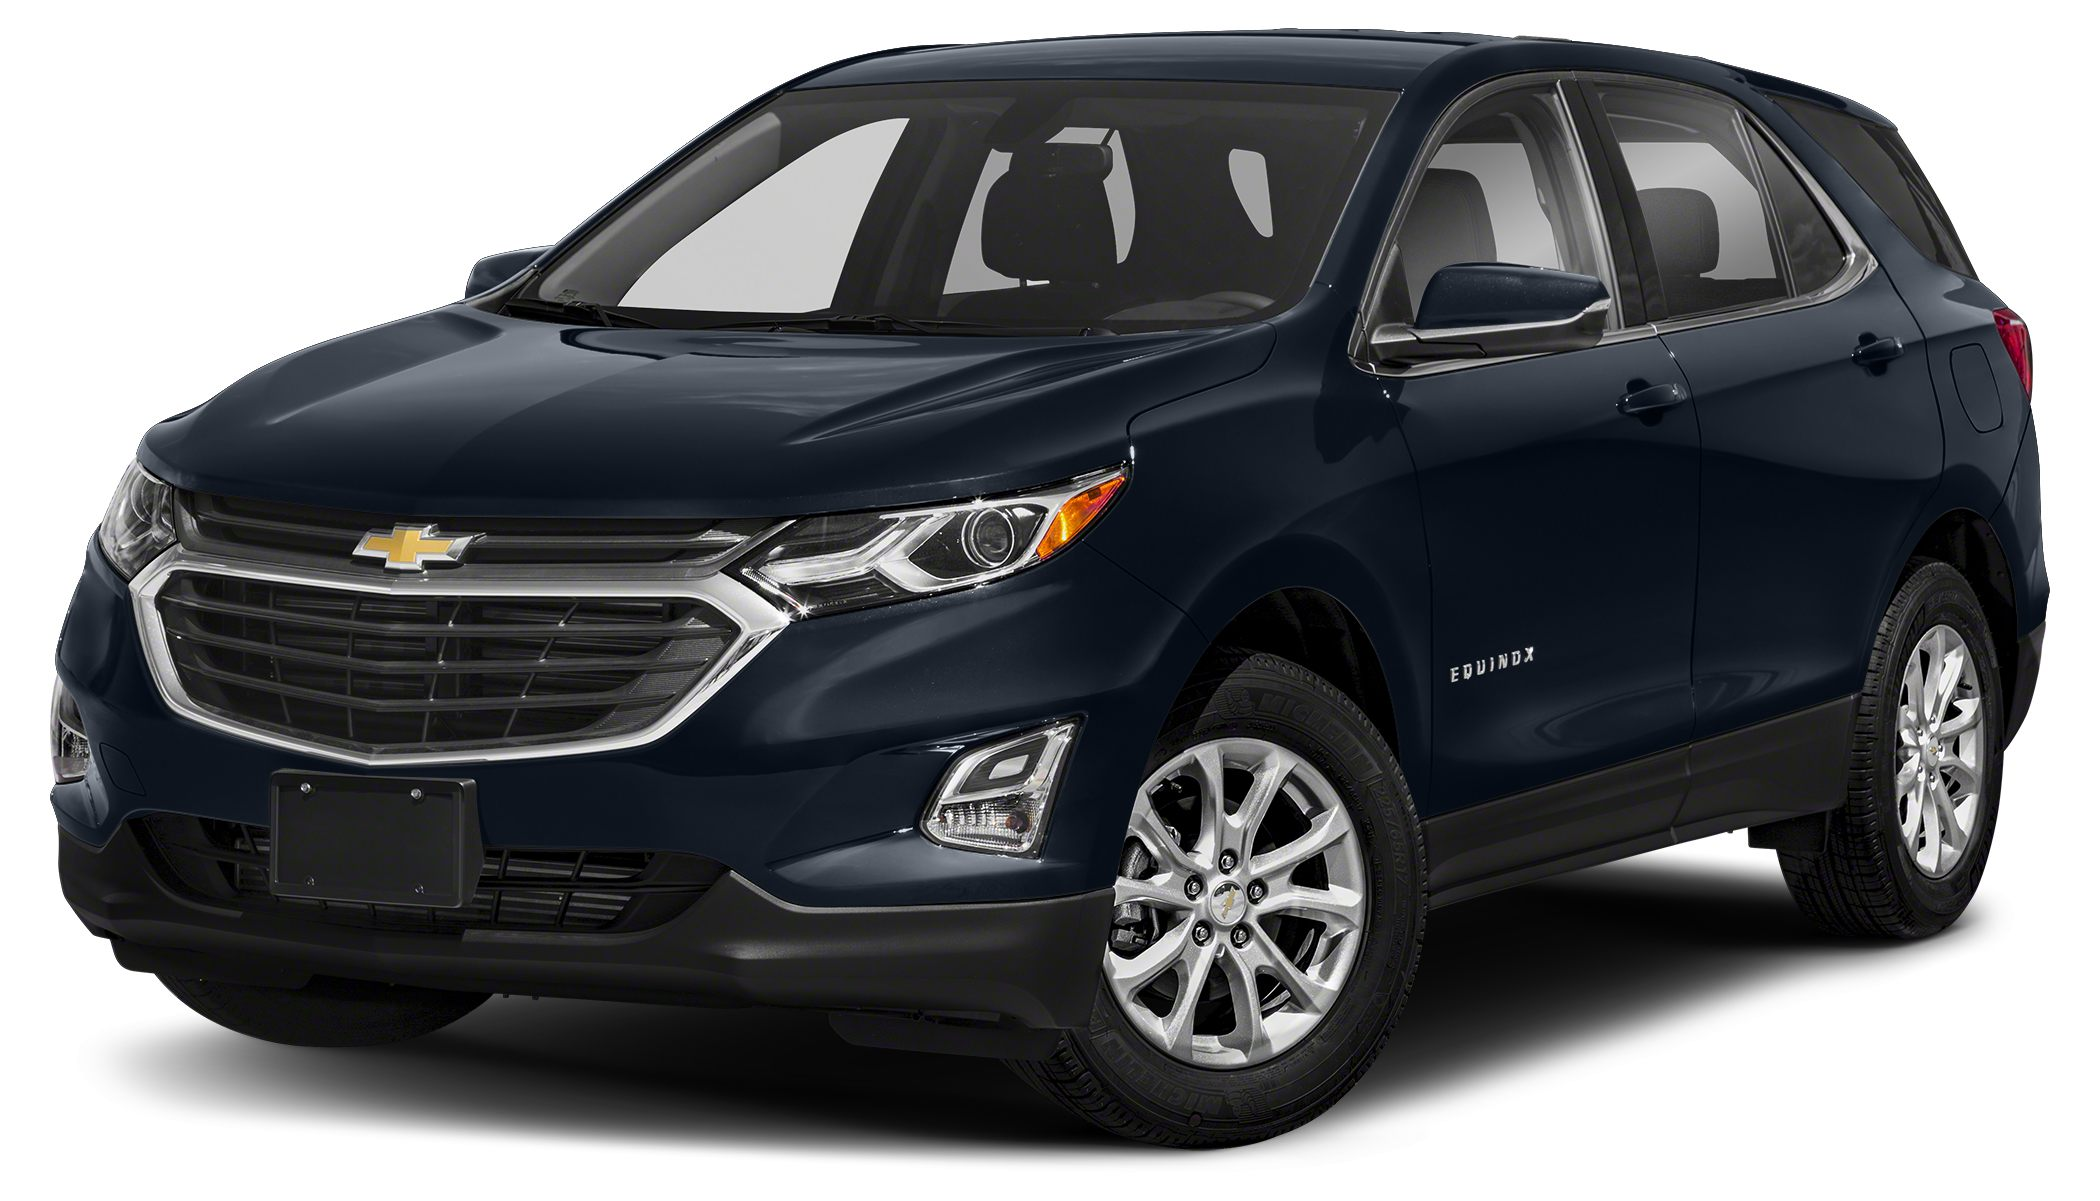 jeep  cherokee limited  chevrolet equinox lt  ford